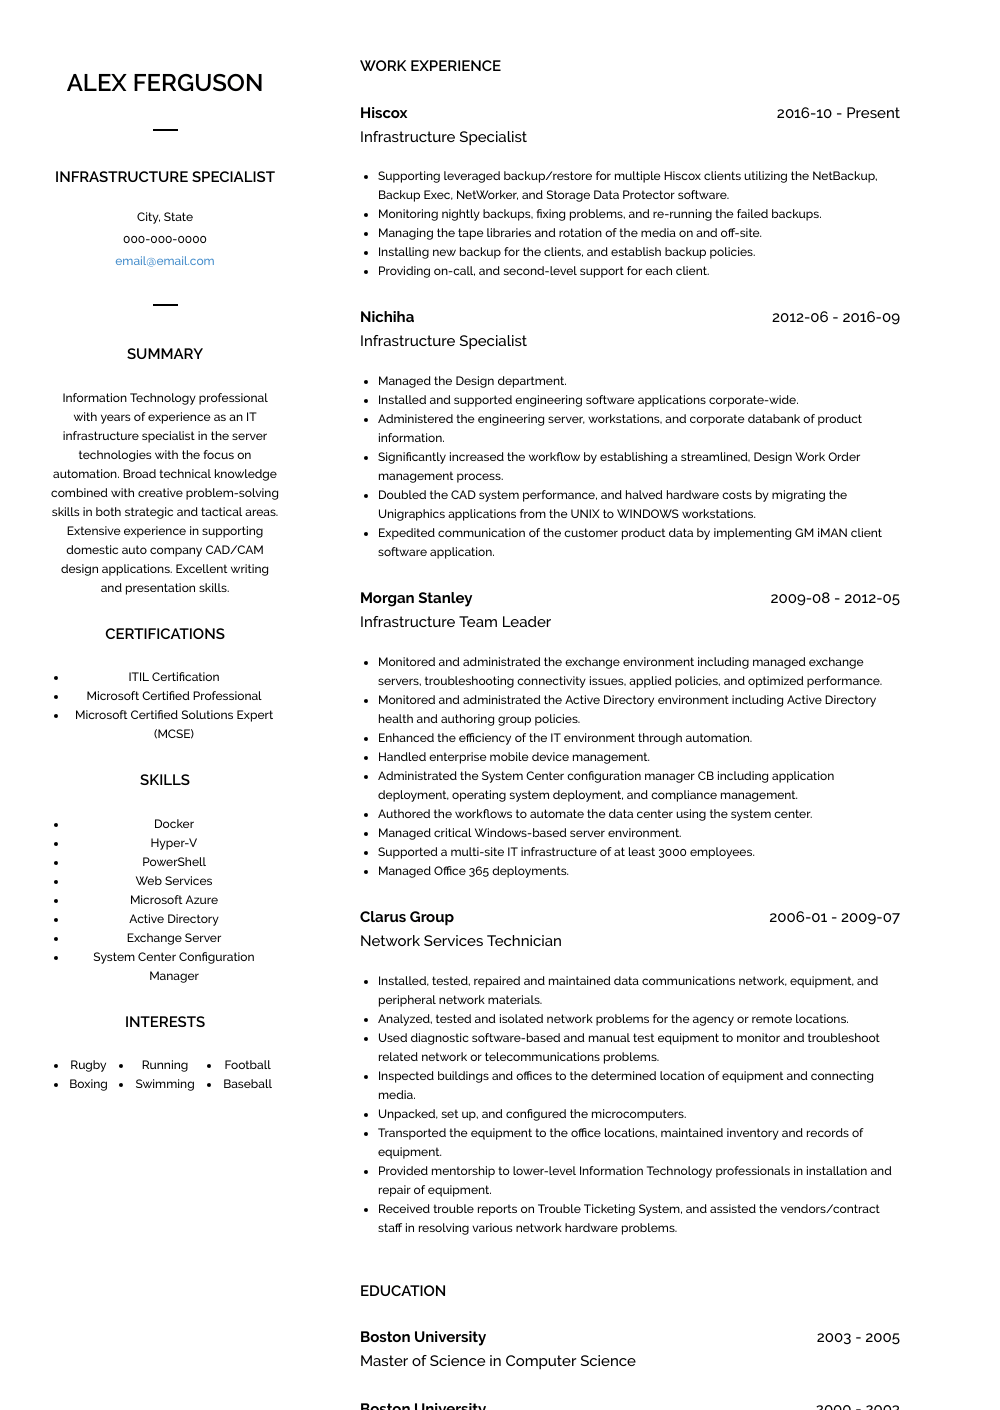 Infrastructure Specialist Resume Sample